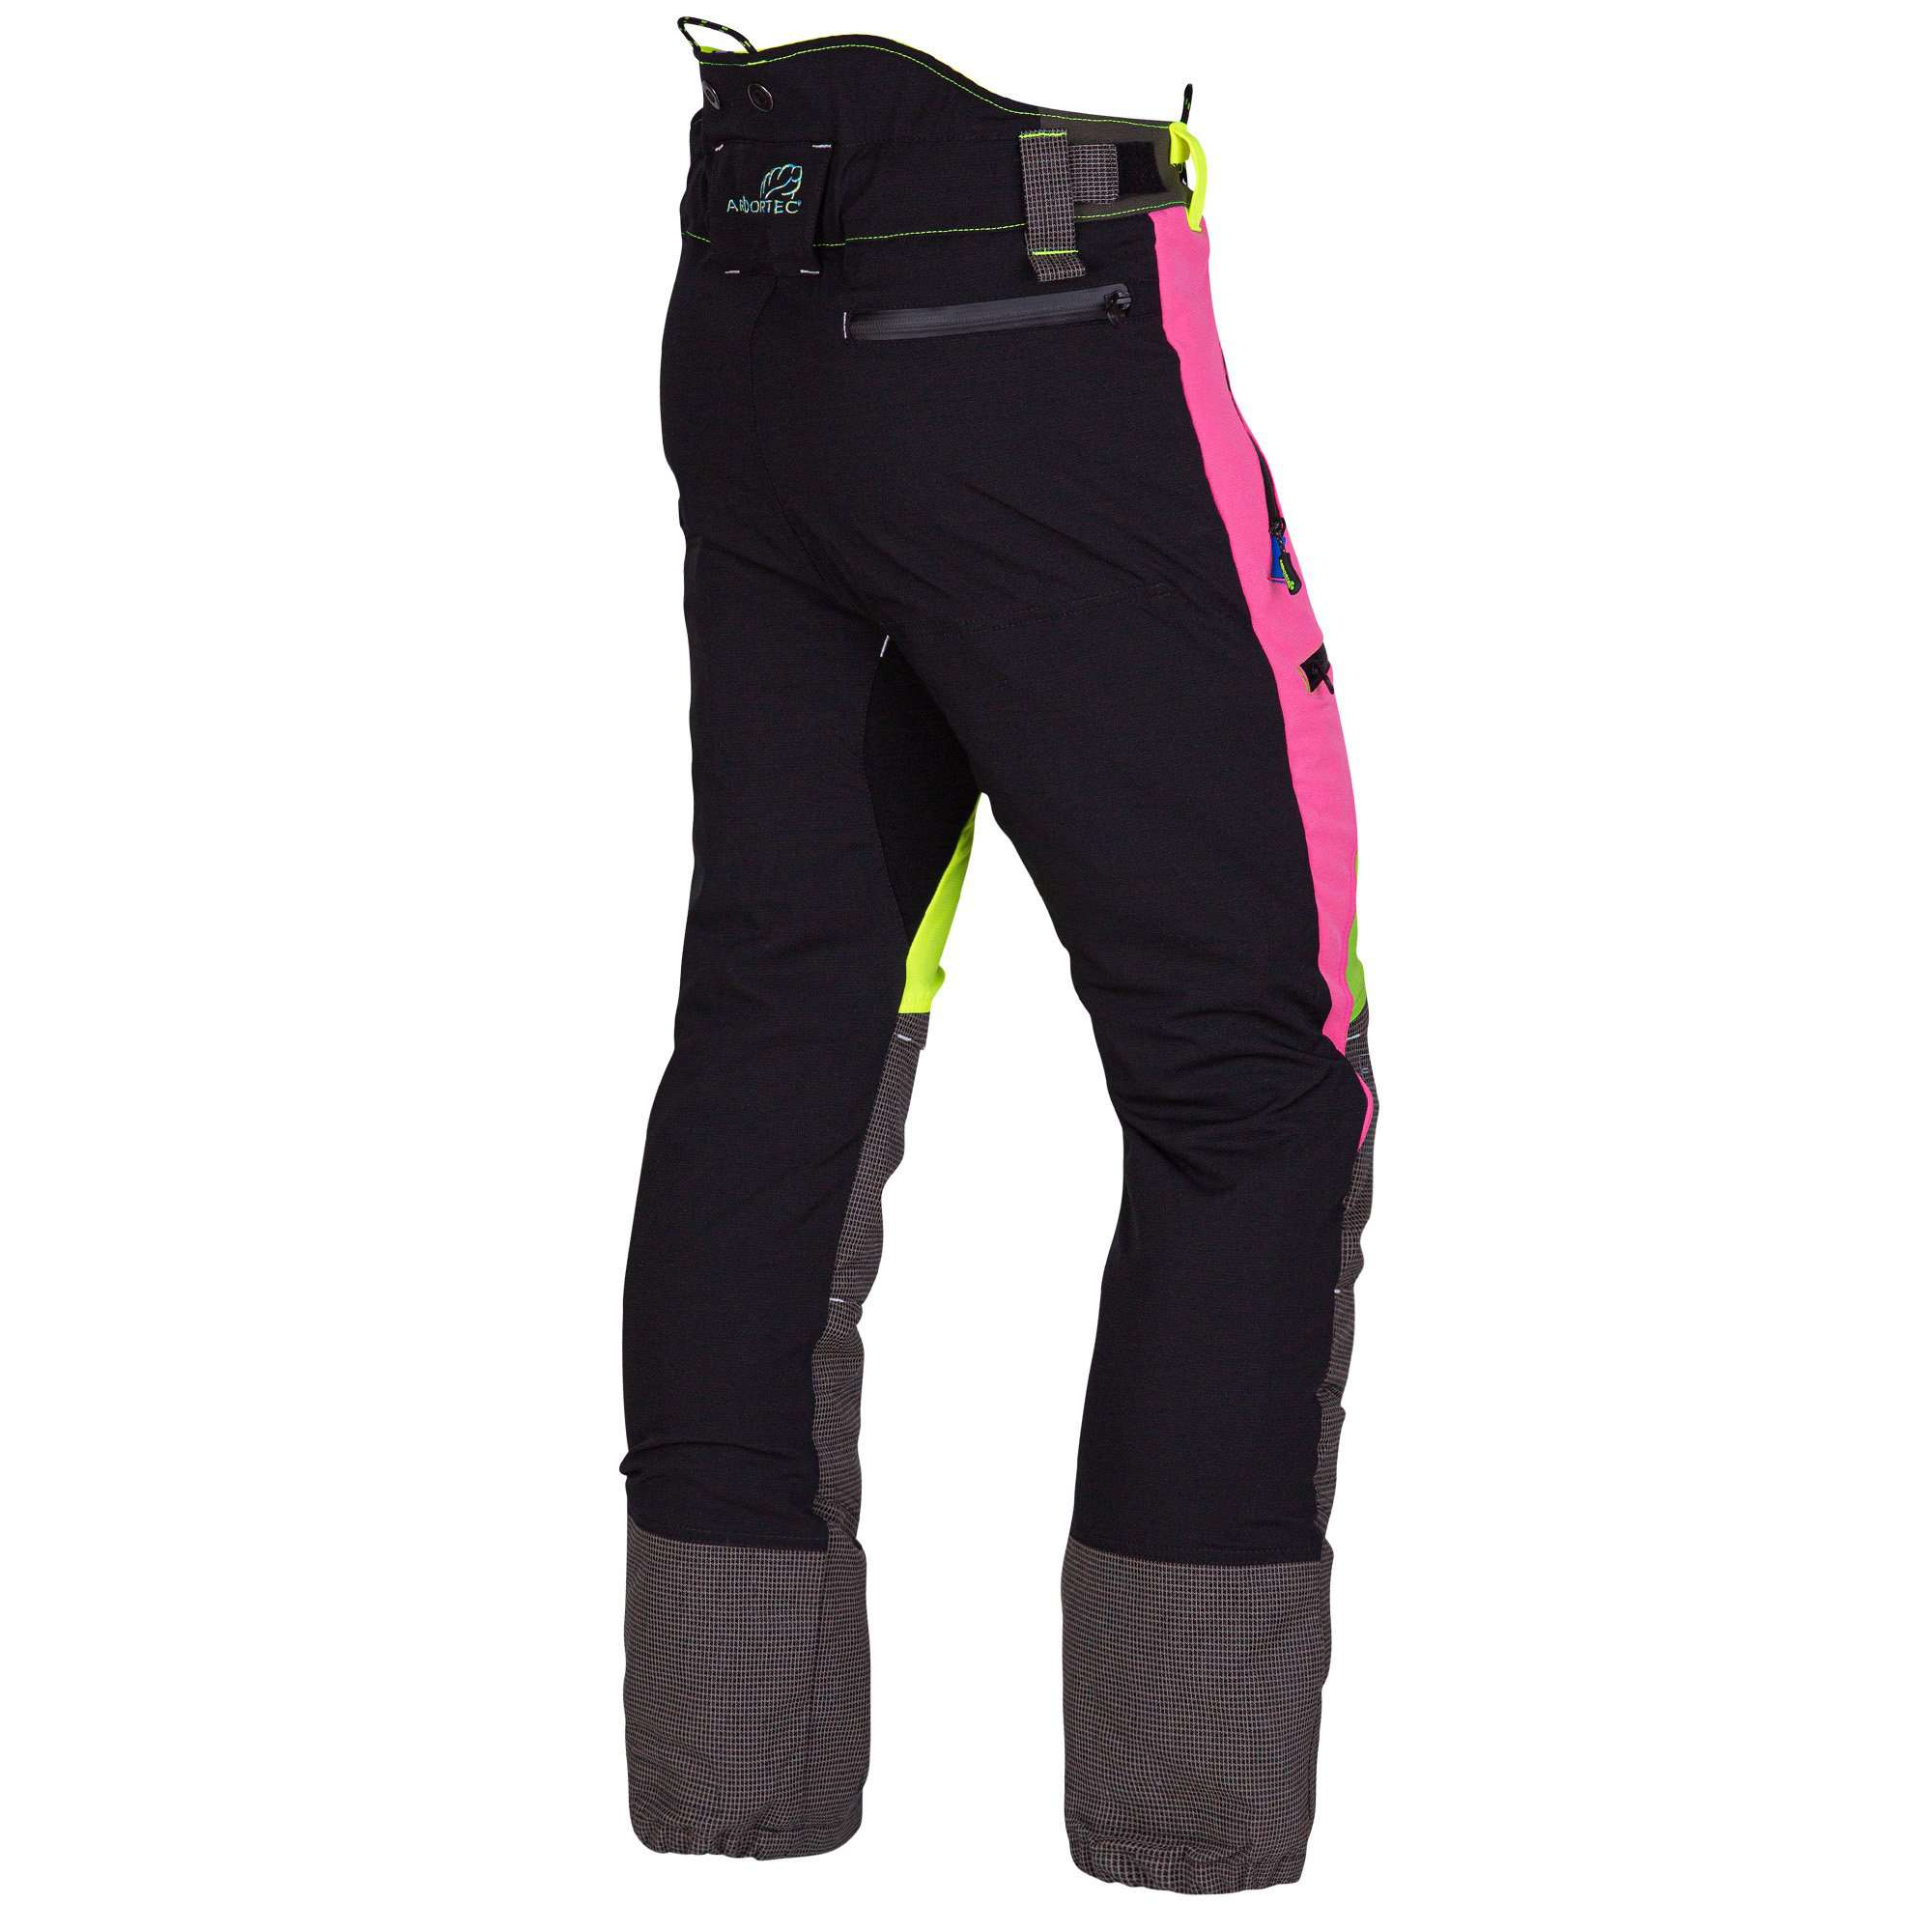 AT4060 Breatheflex Pro Type A Class 1 Chainsaw Trousers - Multi Colour